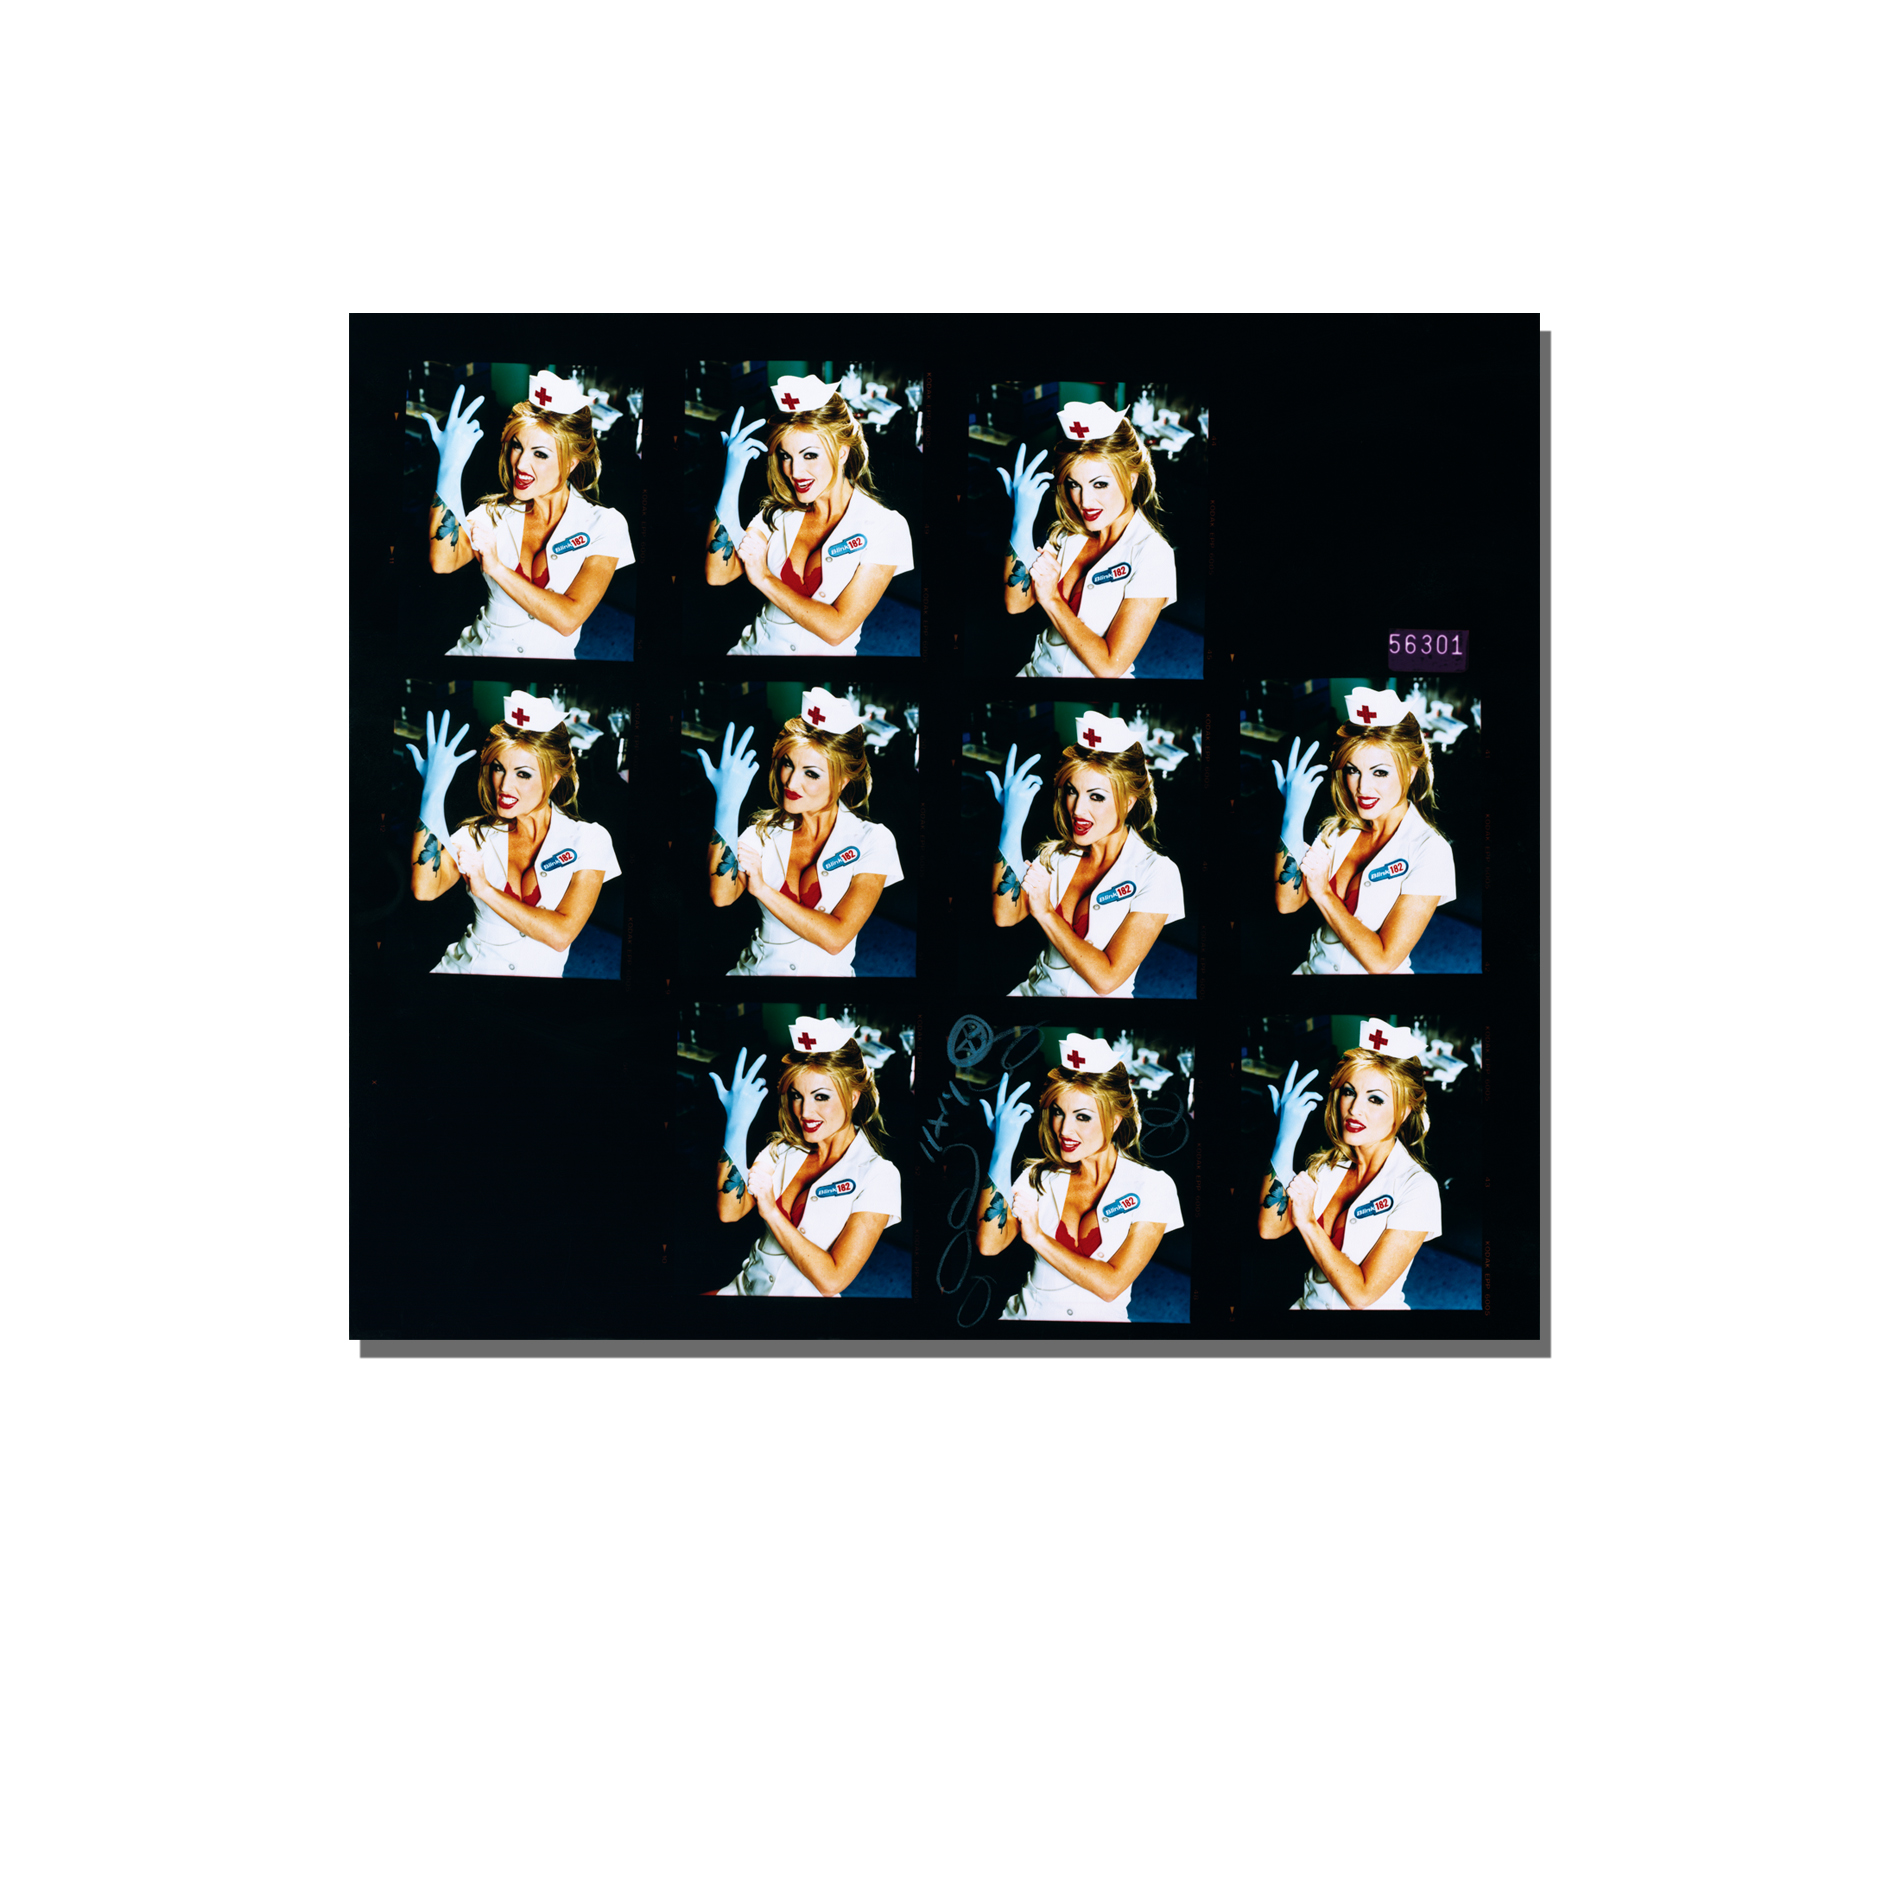 8x10 Blink-182 Contact Print w/Cover Album cover Image - David Goldman  Photography